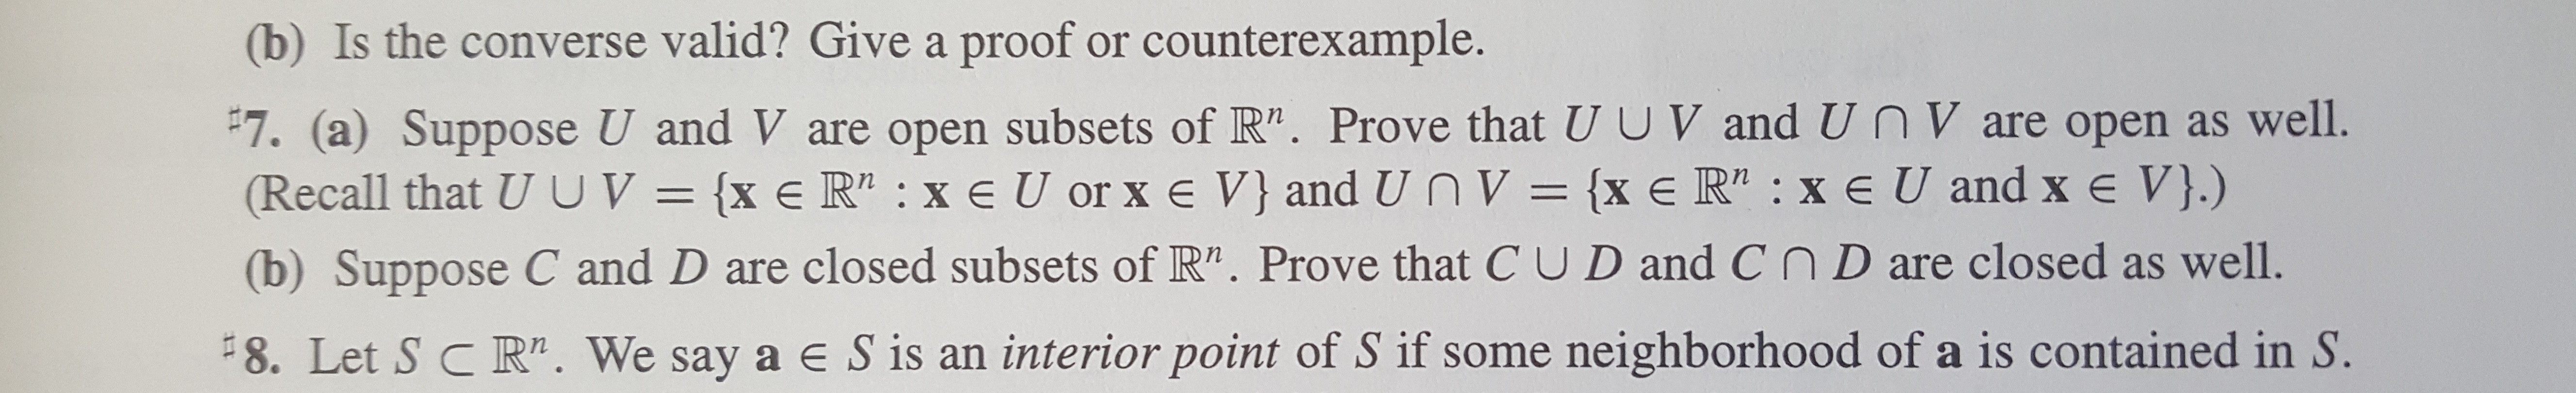 """(b) Is the converse valid? Give a proof or counterexample. #7. (a) Suppose U and V are open subsets of R"""". Prove that U U V and UnV are open as well. (Recall that UUV= {x e R2 xe U or x e V} and Un V = {x e R"""" : x e U and x e V}.) (b) Suppose C and D are closed subsets of R"""". Prove that C UD and CnD are closed as well. 8. Let S C R"""". We say a e S is an interior point of S if some neighborhood of a is contained in S."""